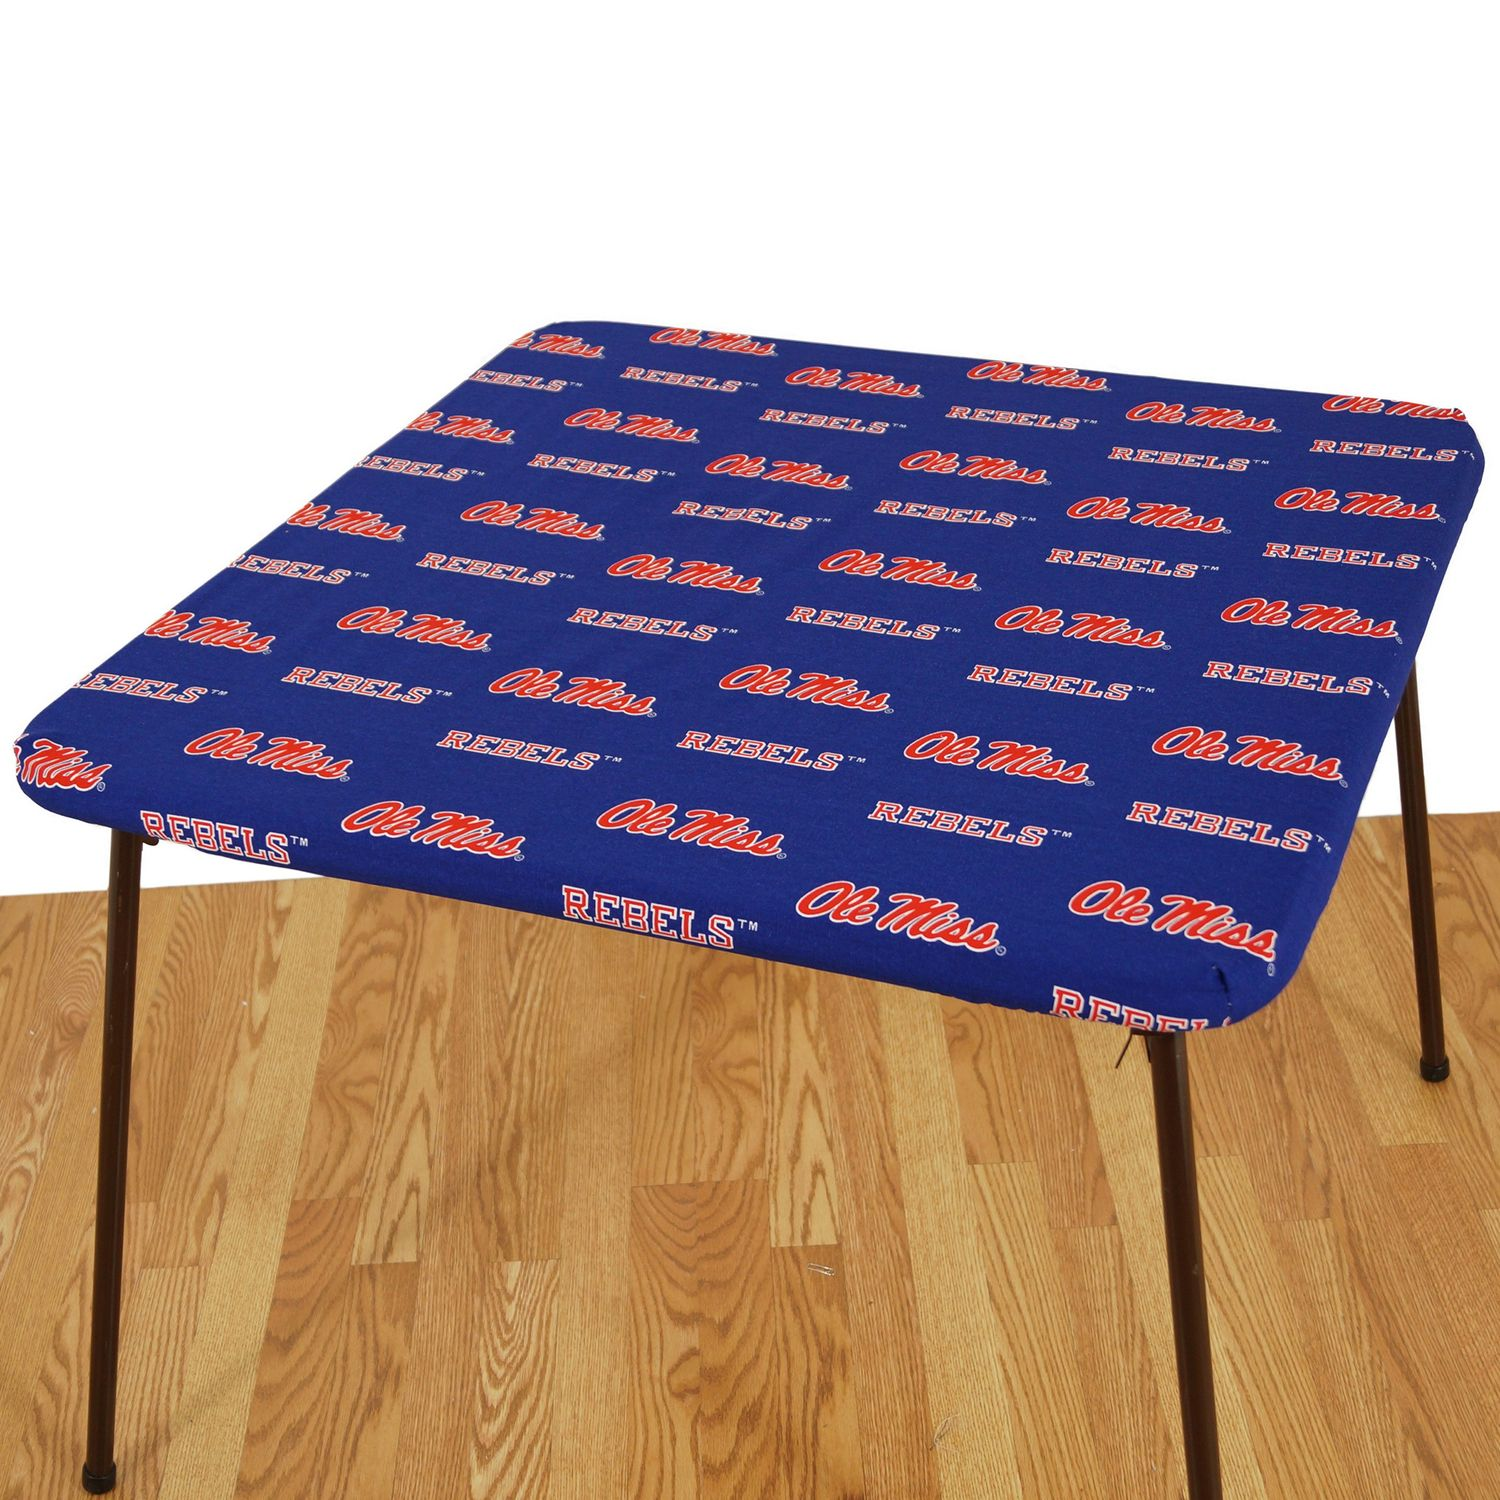 225 & Ole Miss Rebels Card Table Cover